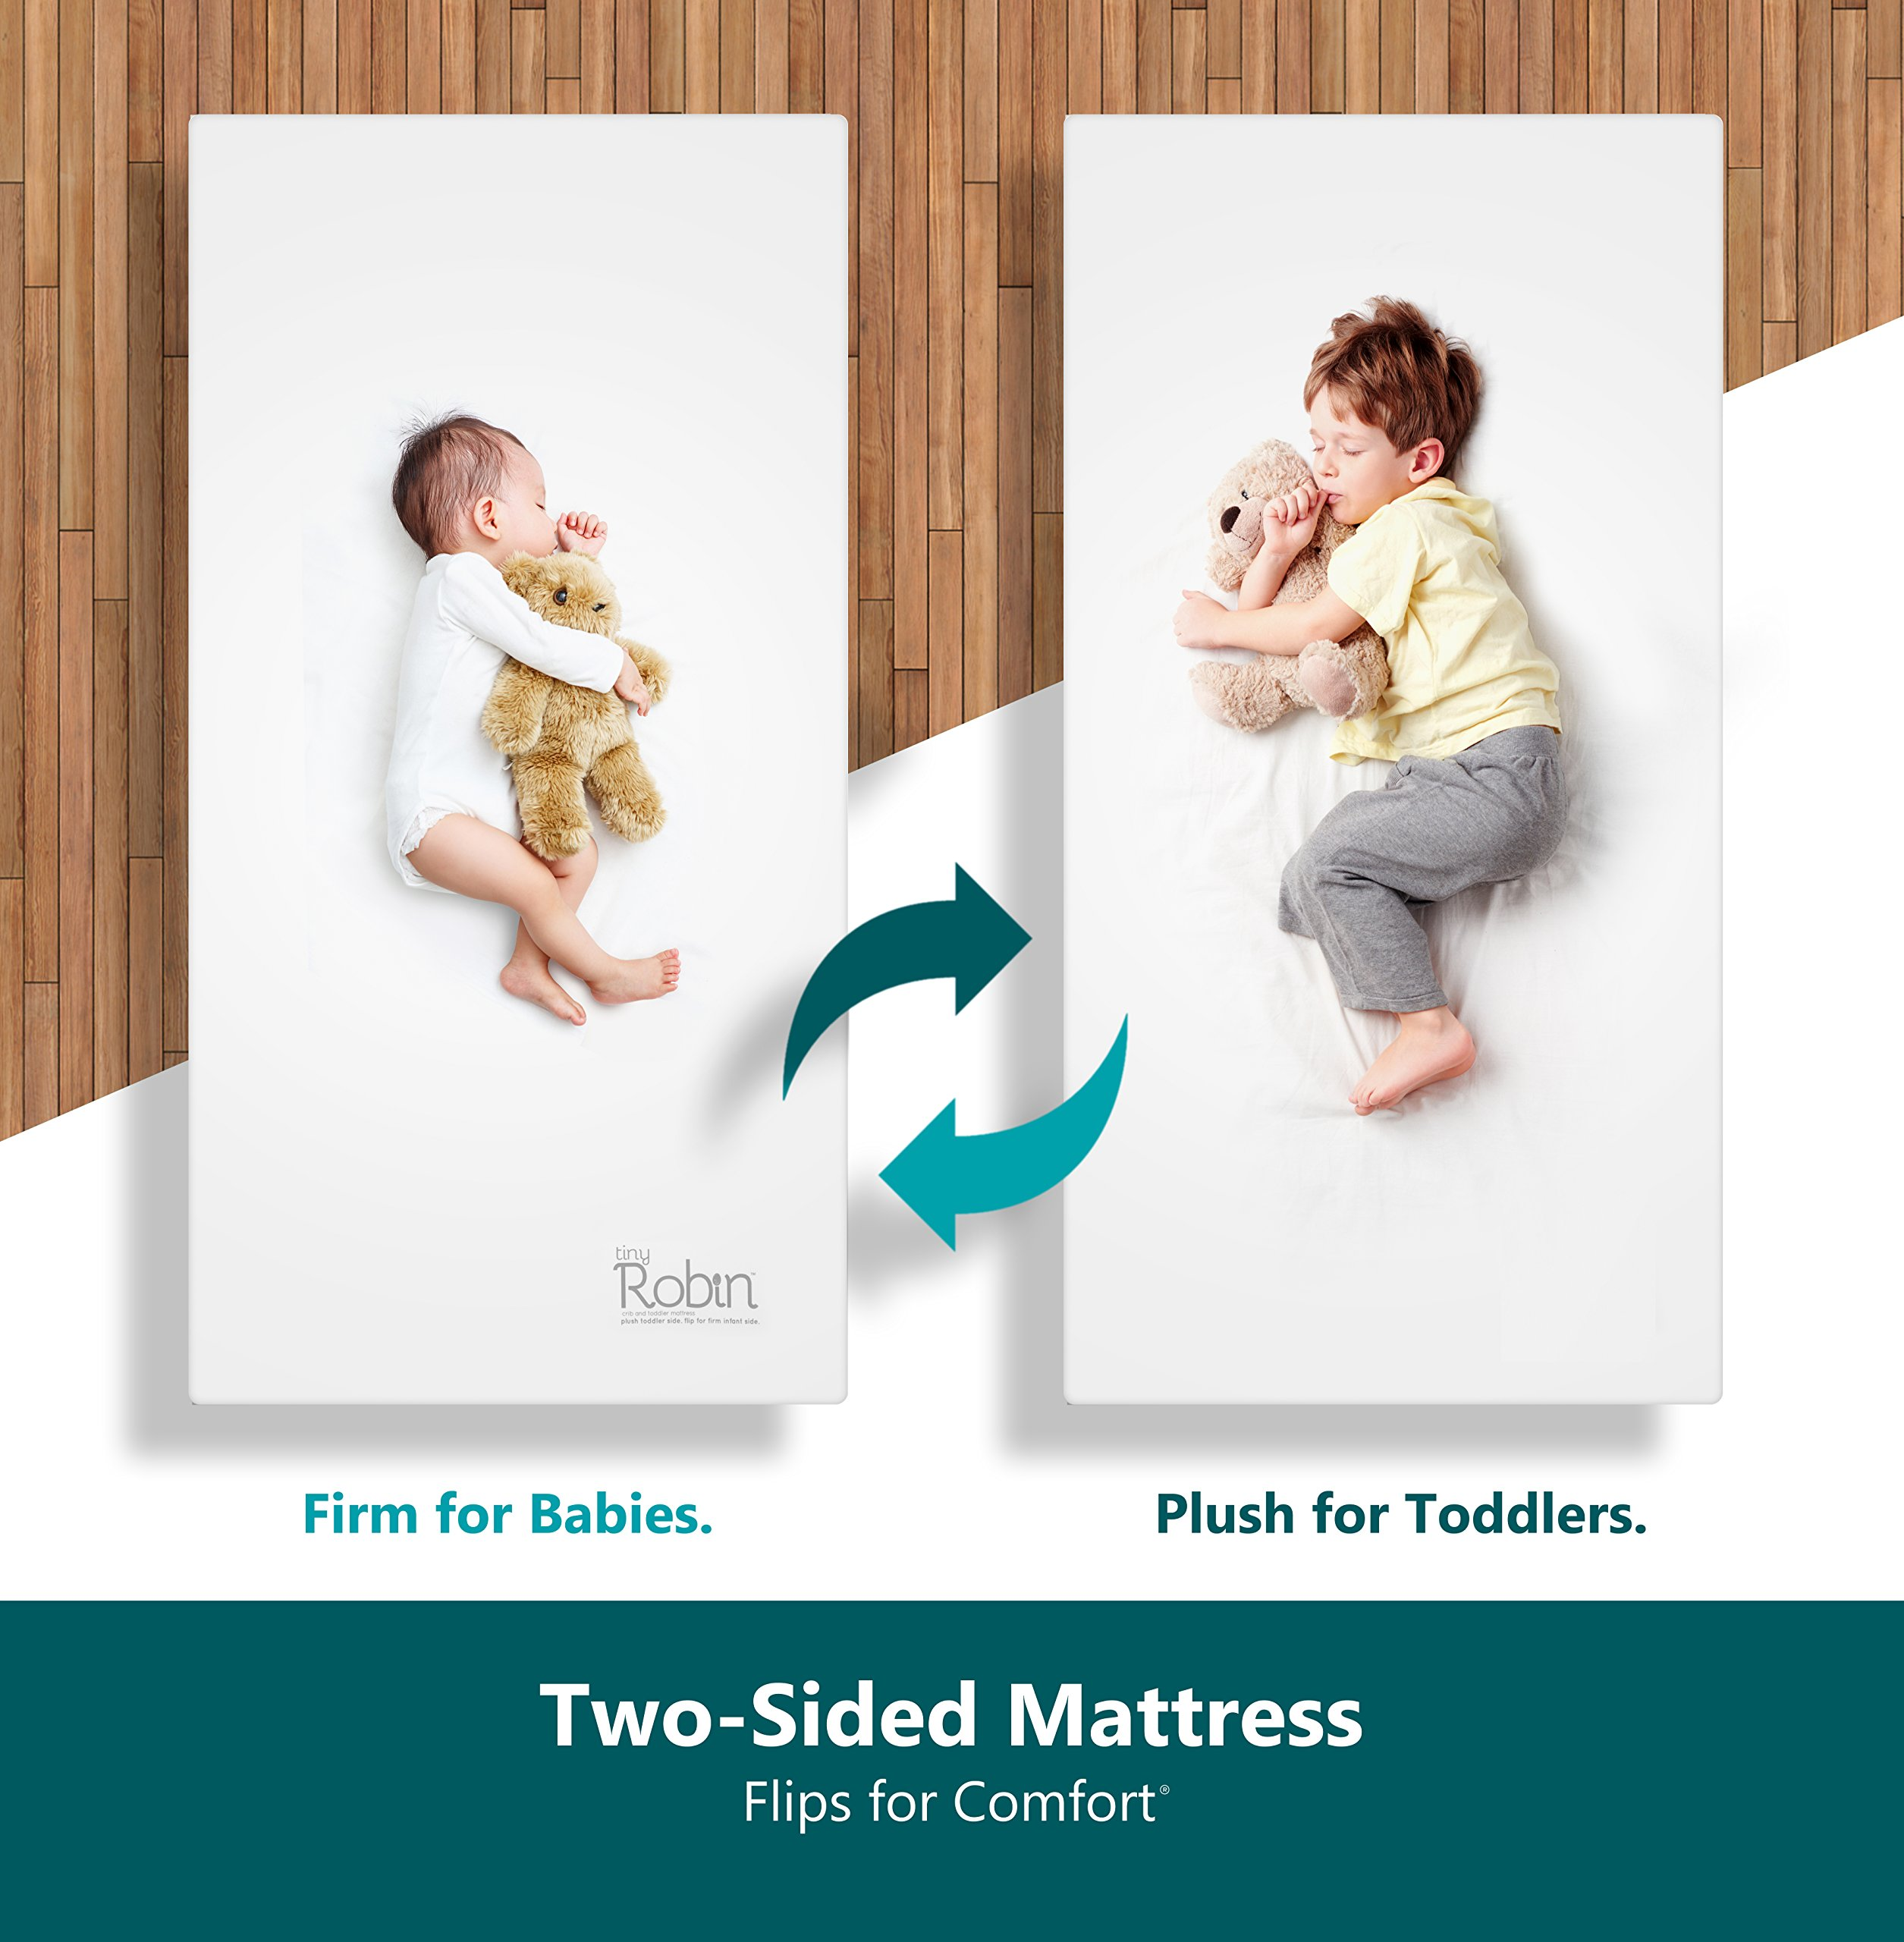 Moonlight Slumber Breathable Dual Sided Baby Crib Mattress. Firm Sided for Infants Reverse to Soft Side for Toddlers Bed. Easy to Clean Waterproof and Odor Resistant (Made in USA. Latest Version). by Moonlight Slumber